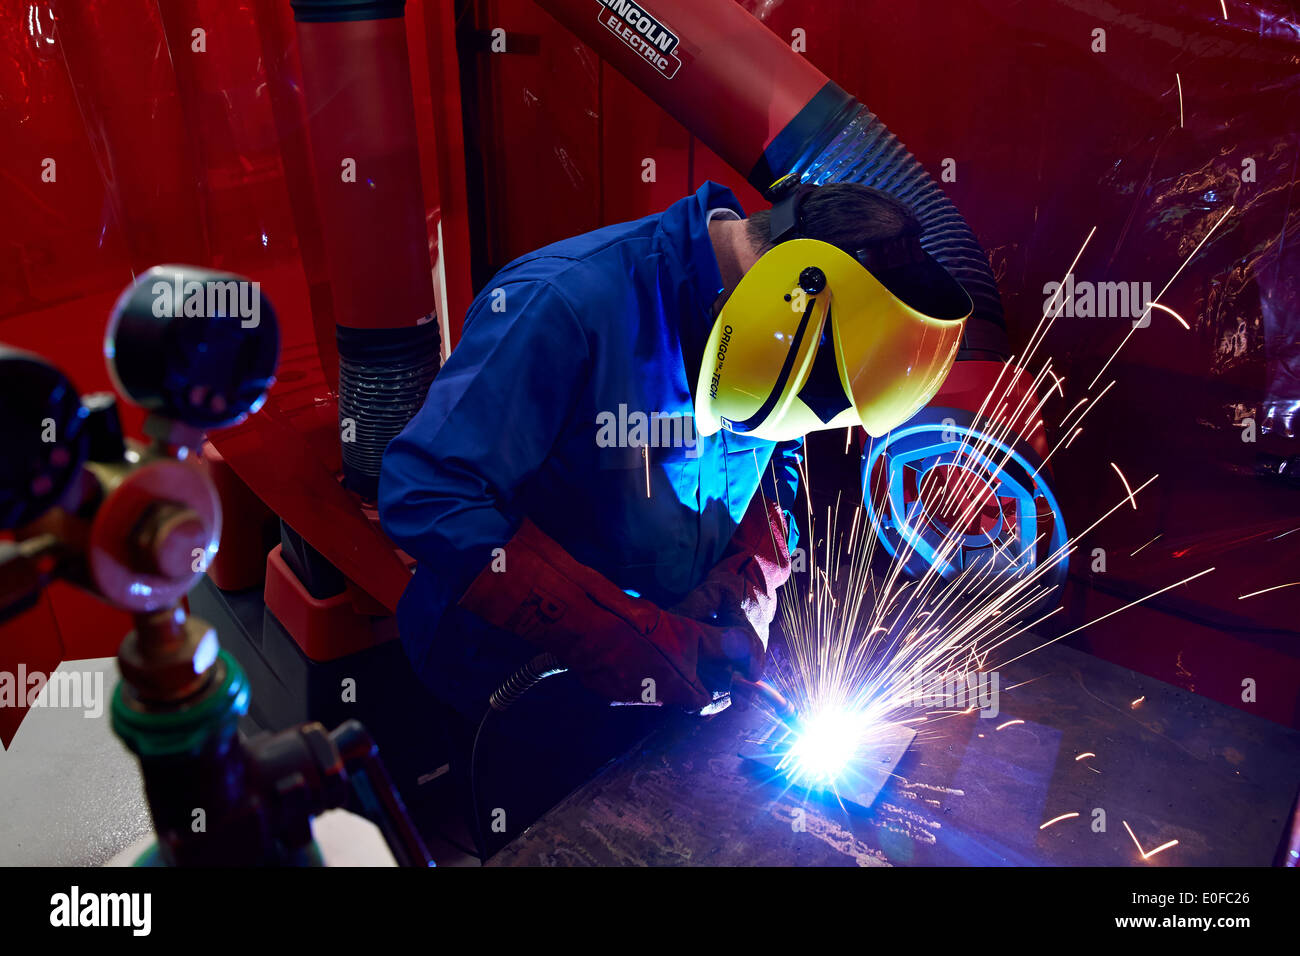 sparks-fly-as-a-skilled-worker-or-welder